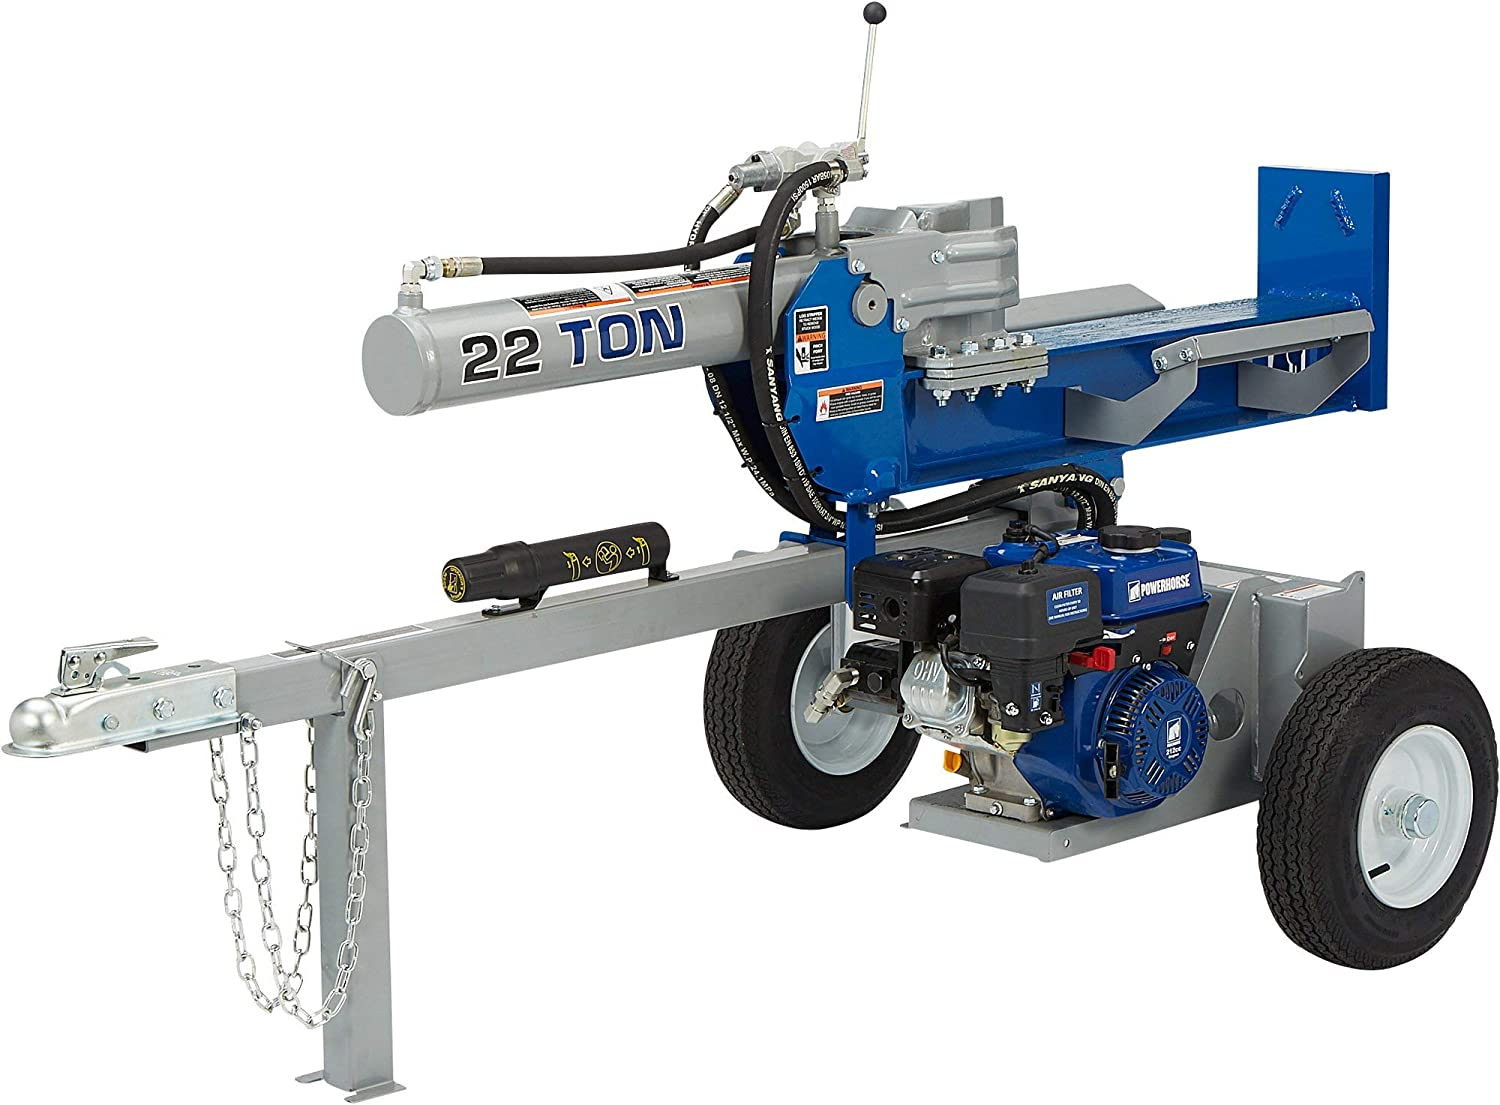 Powerhorse Horizontal/Vertical Log Splitter - 22 Tons, 212cc Engine